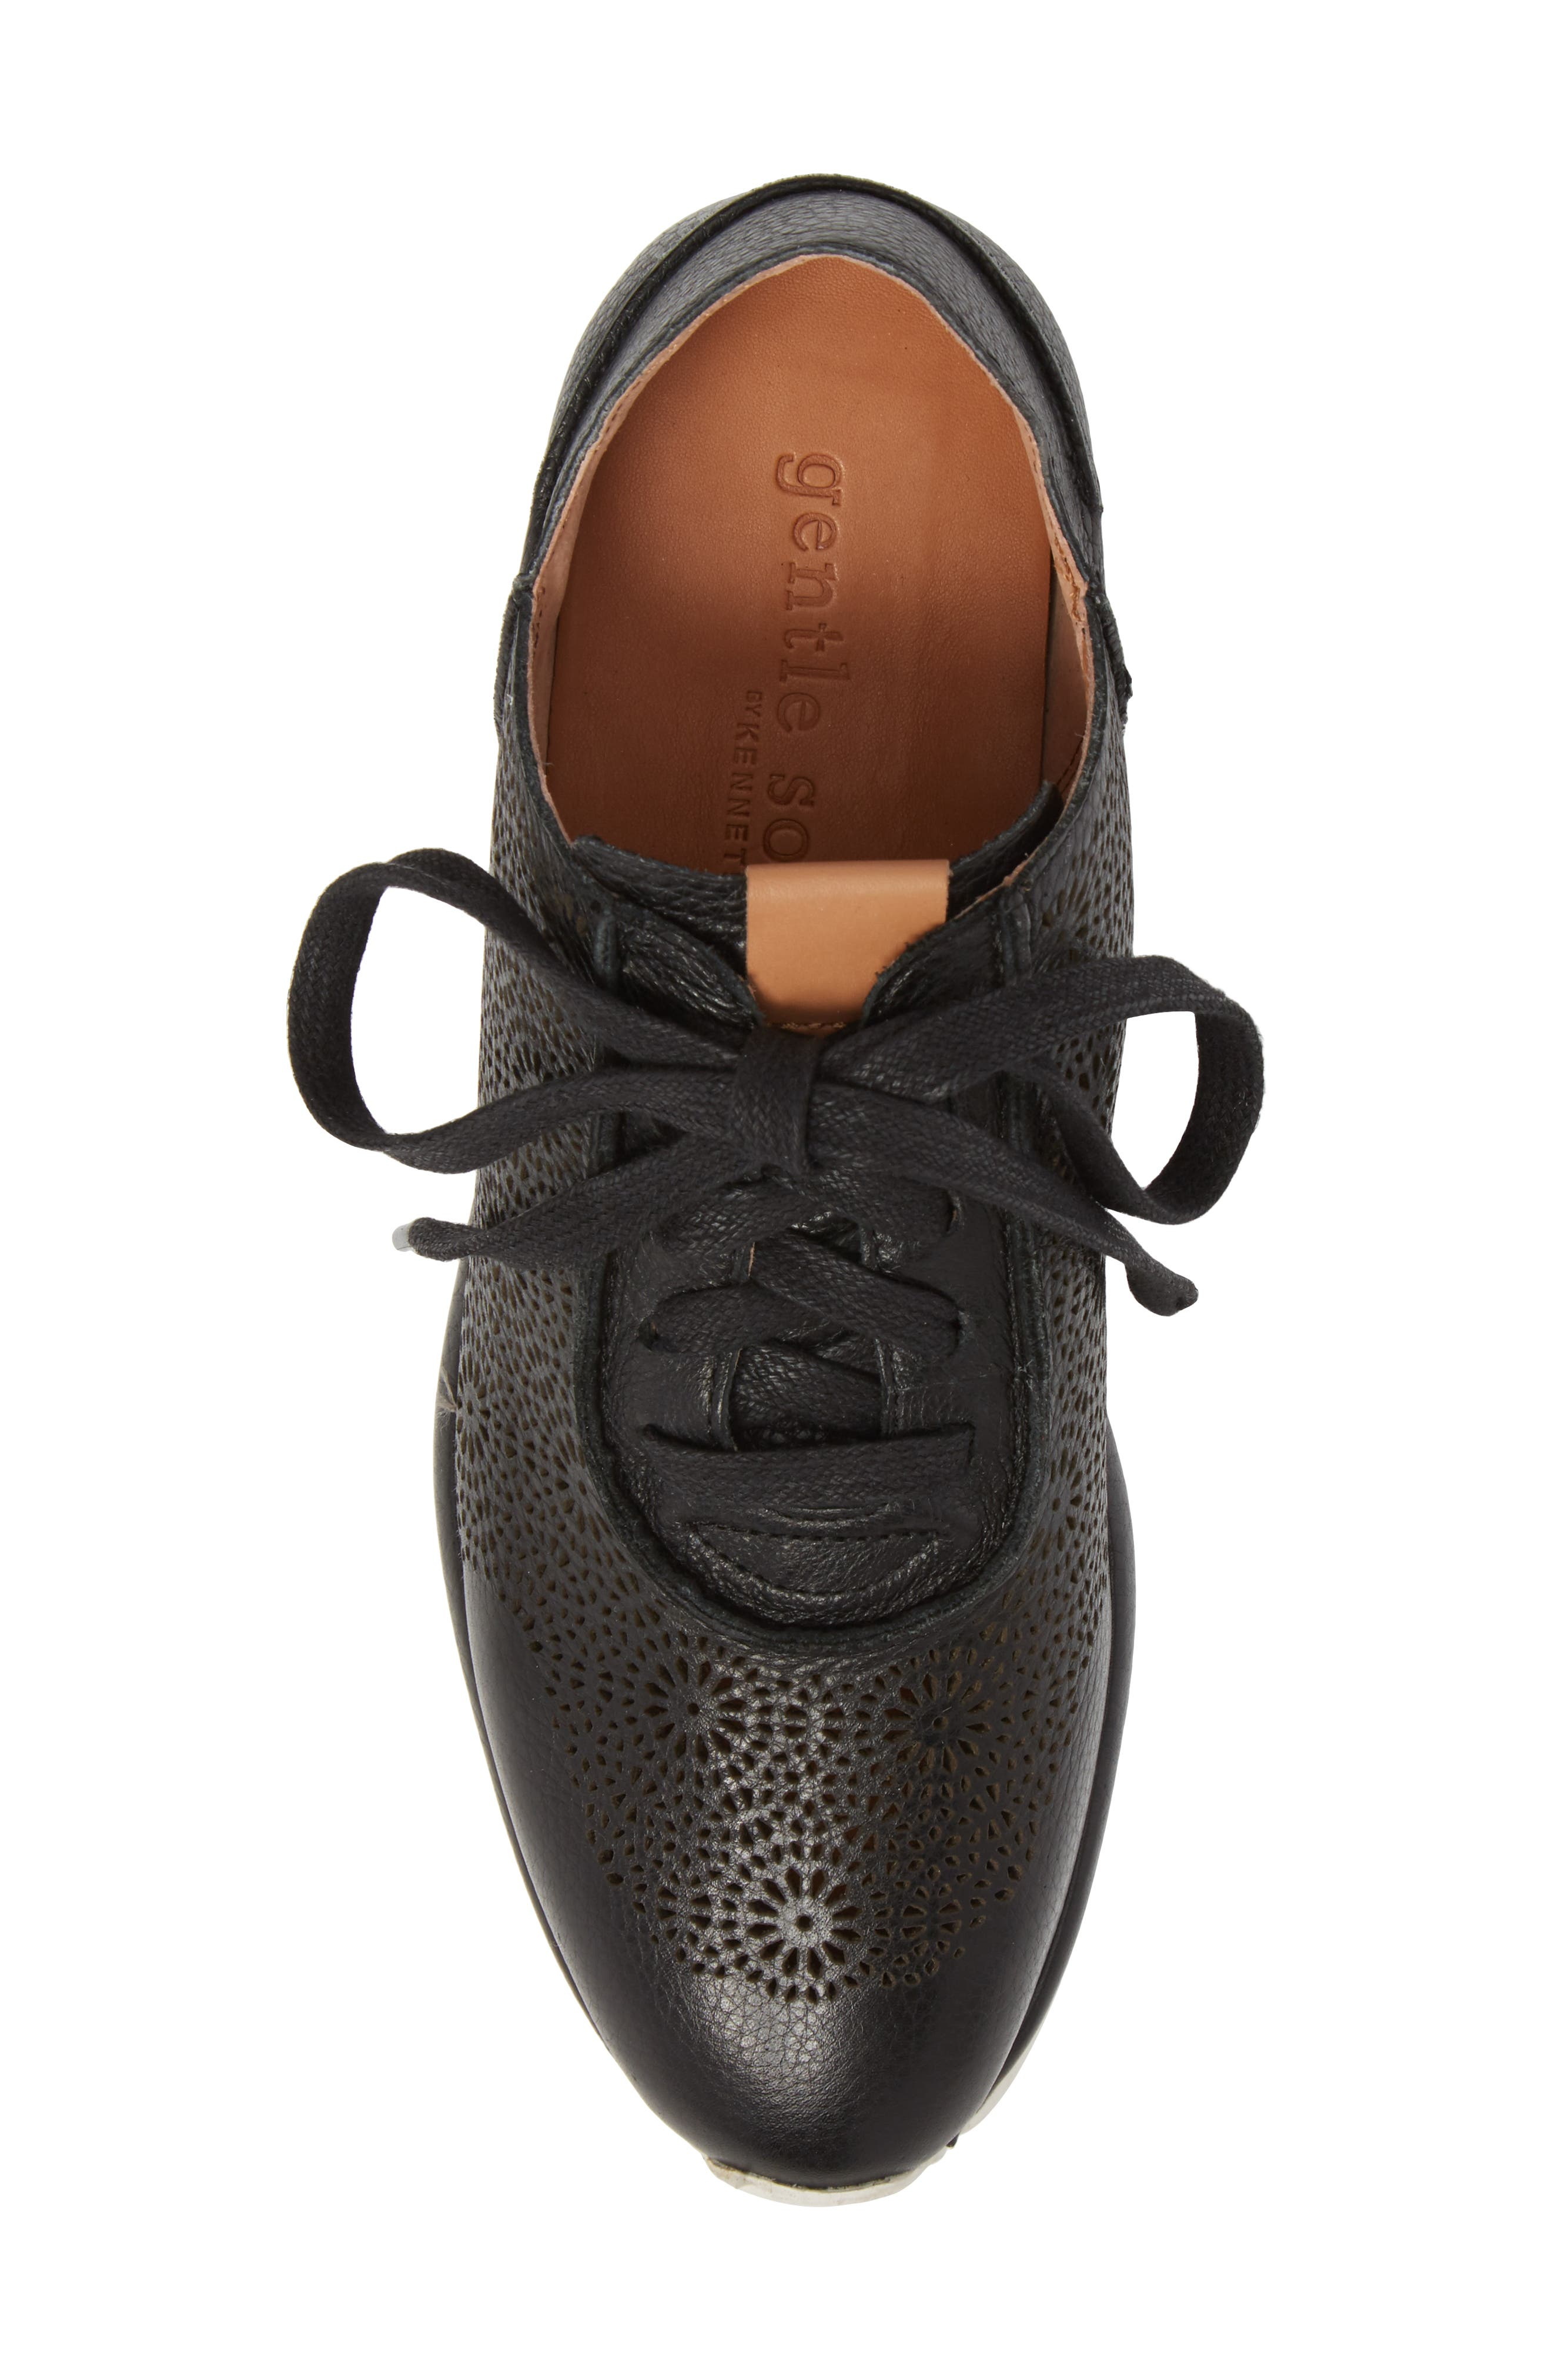 GENTLE SOULS BY KENNETH COLE, Raina II Sneaker, Alternate thumbnail 5, color, BLACK LEATHER